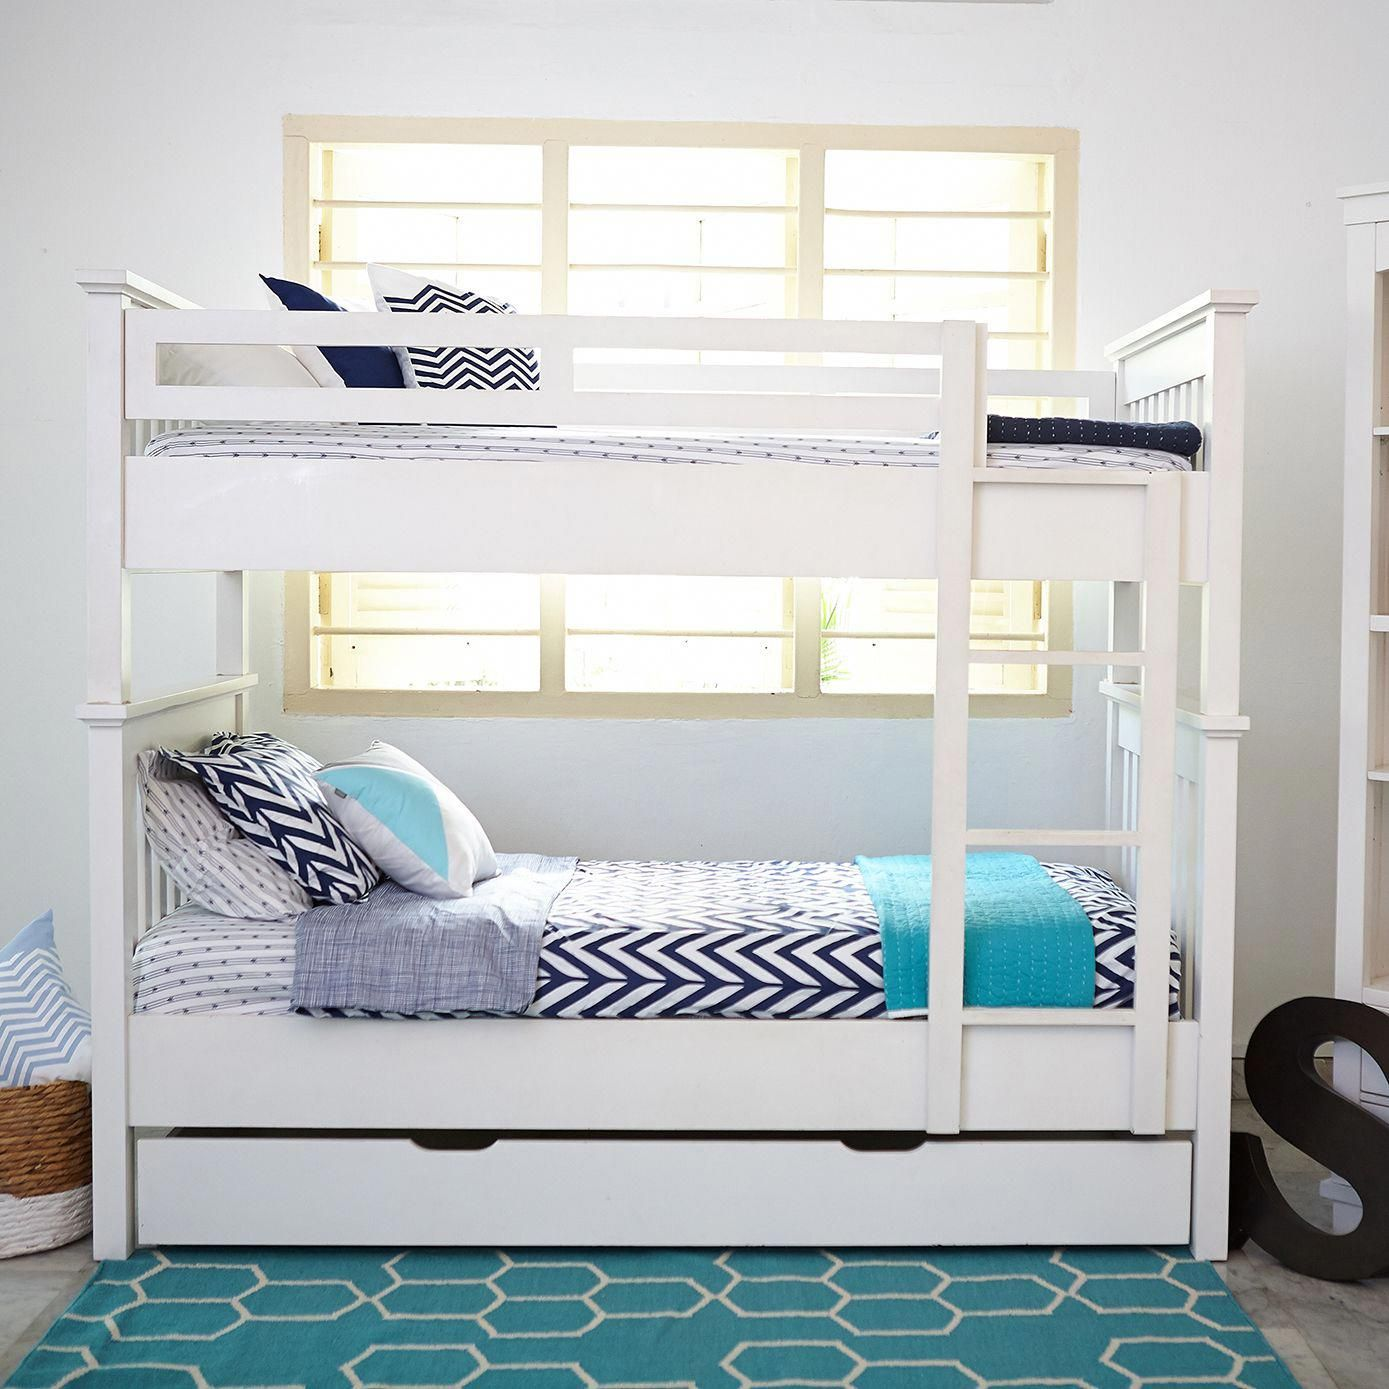 Bunk Beds Bed Frame Queen Size Bed Bedroom Furniture Kids Beds Queen Bed Storage Bed Bunk Beds For Kids Twin O Bunk Beds For Sale Kids Bunk Beds Cool Bunk Beds